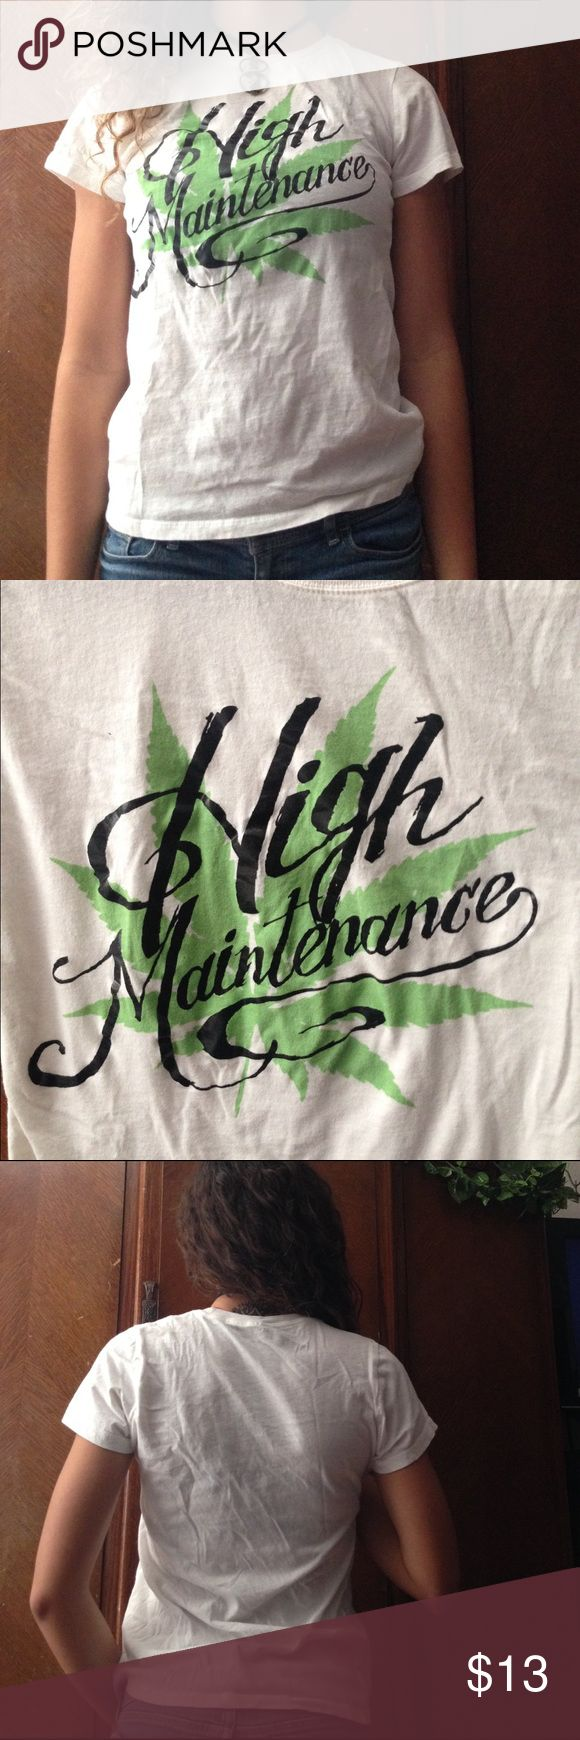 High maintenance - Spencer's - weed shirt - small Women's high maintenance weed shirt - Brand: Spencer's -  Size: small & medium - condition: perfect washed and worn 1 time Spencers Tops Tees - Short Sleeve